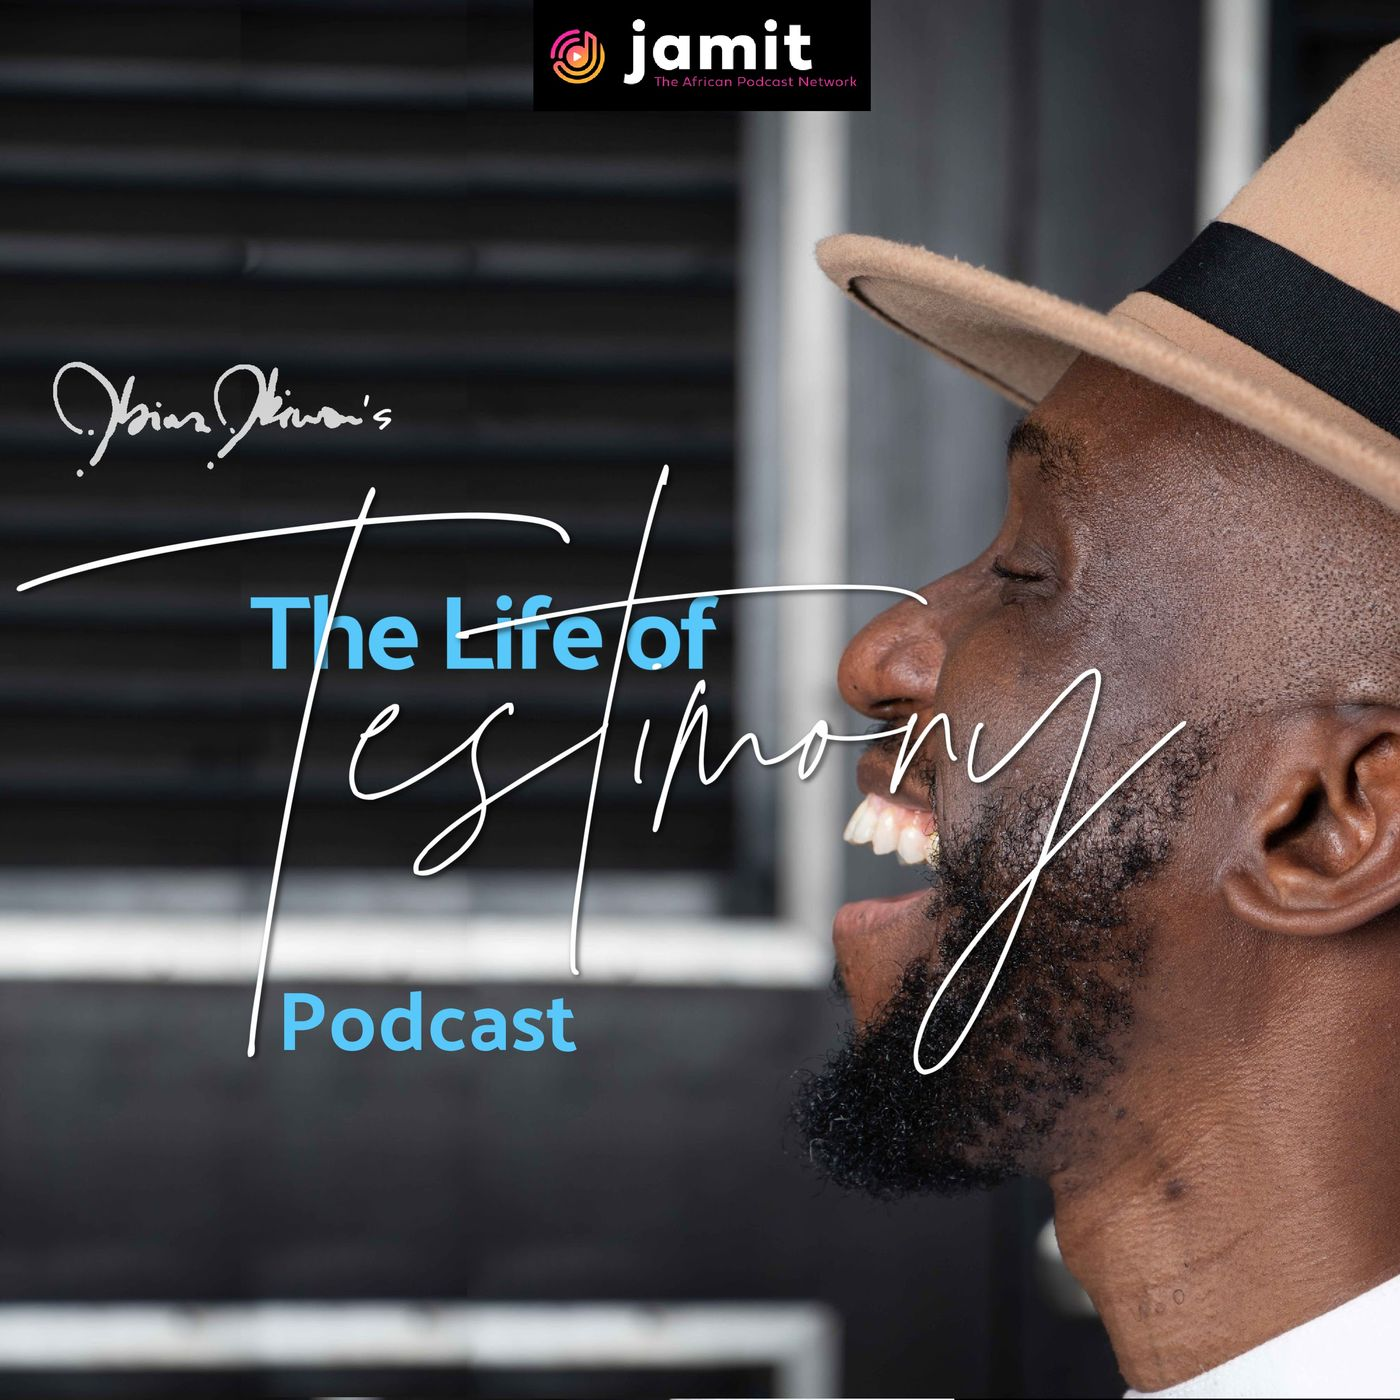 The Life Of Testimony on Jamit